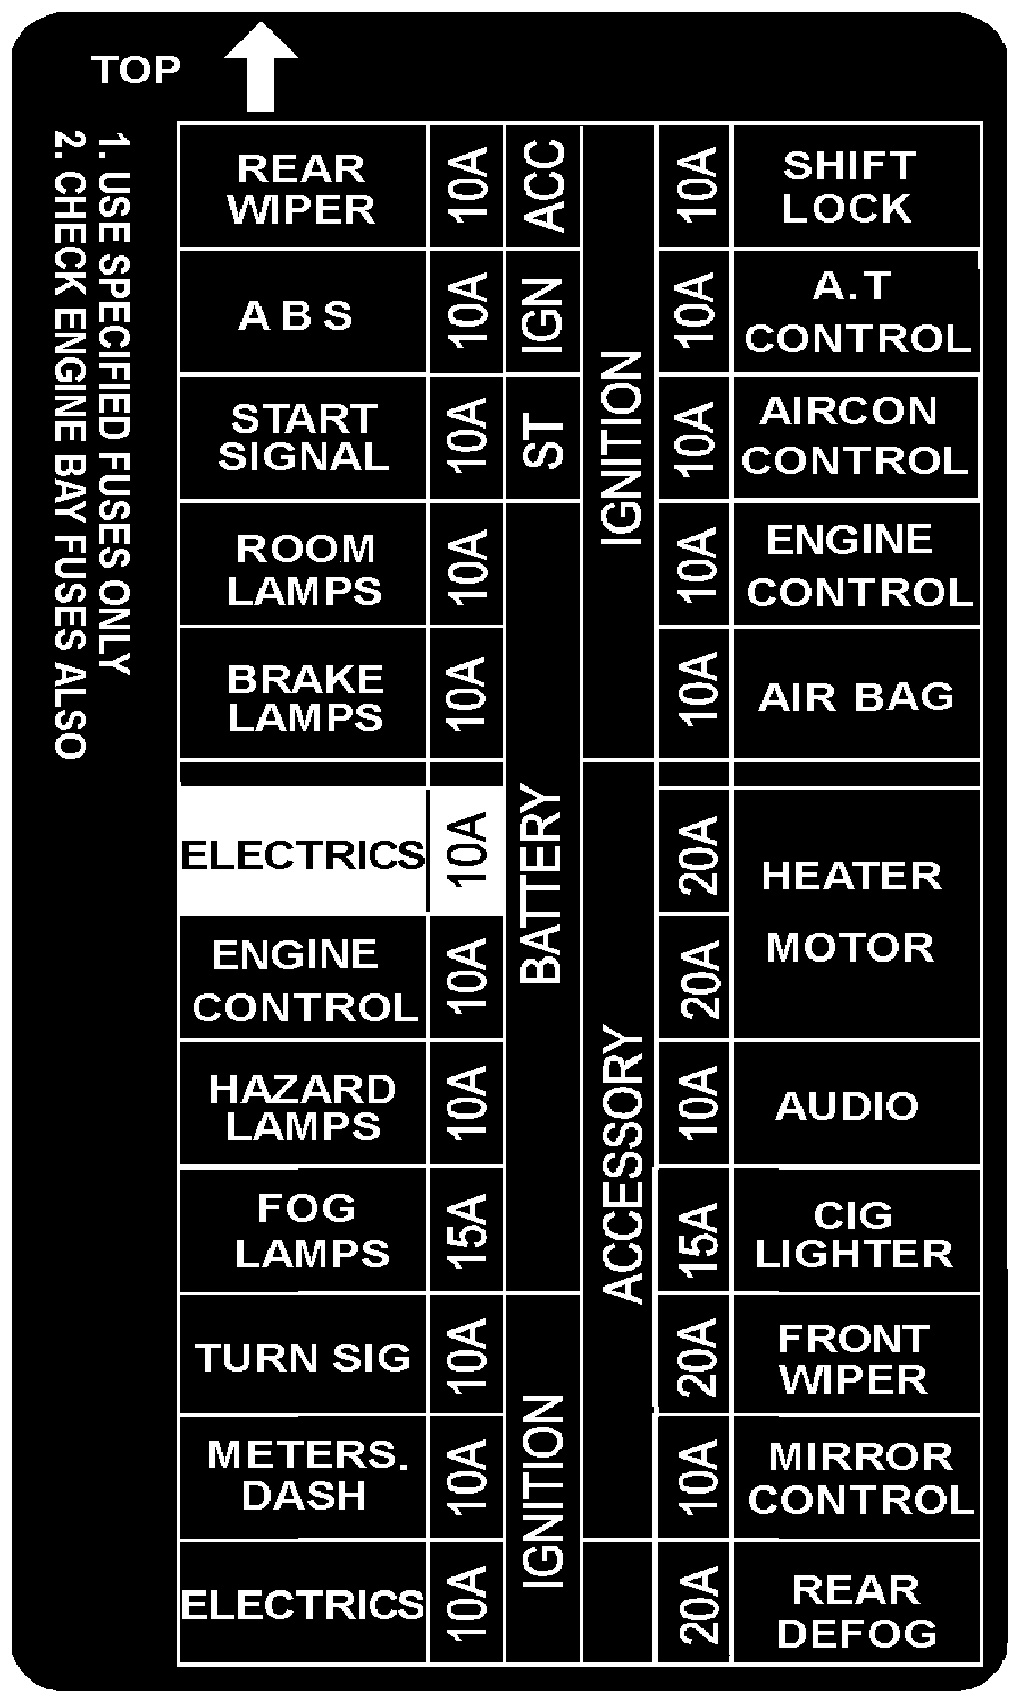 Nissan Almera Audio Wiring Diagram : Fuse for dash lights rear general maintenance